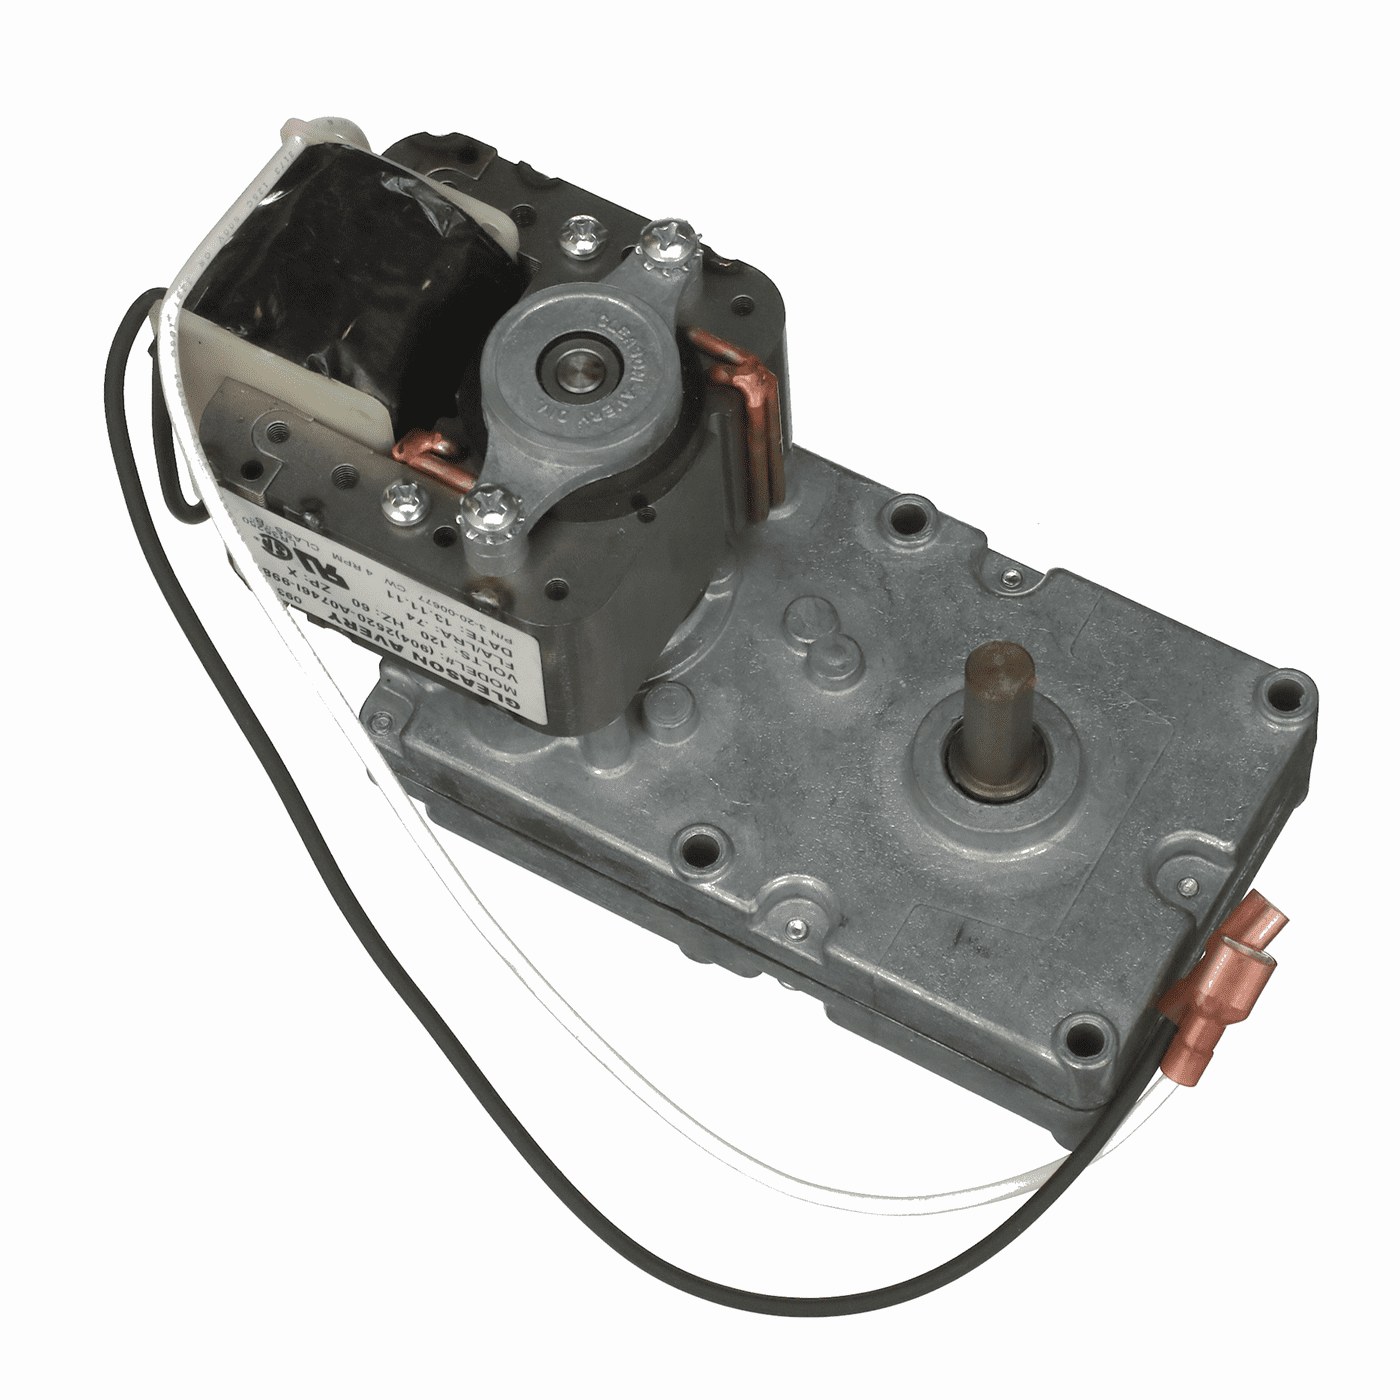 Harman 3-20-00677, 4 RPM Auger Motor for Advance, Accentra & XXV, 3-20-00677